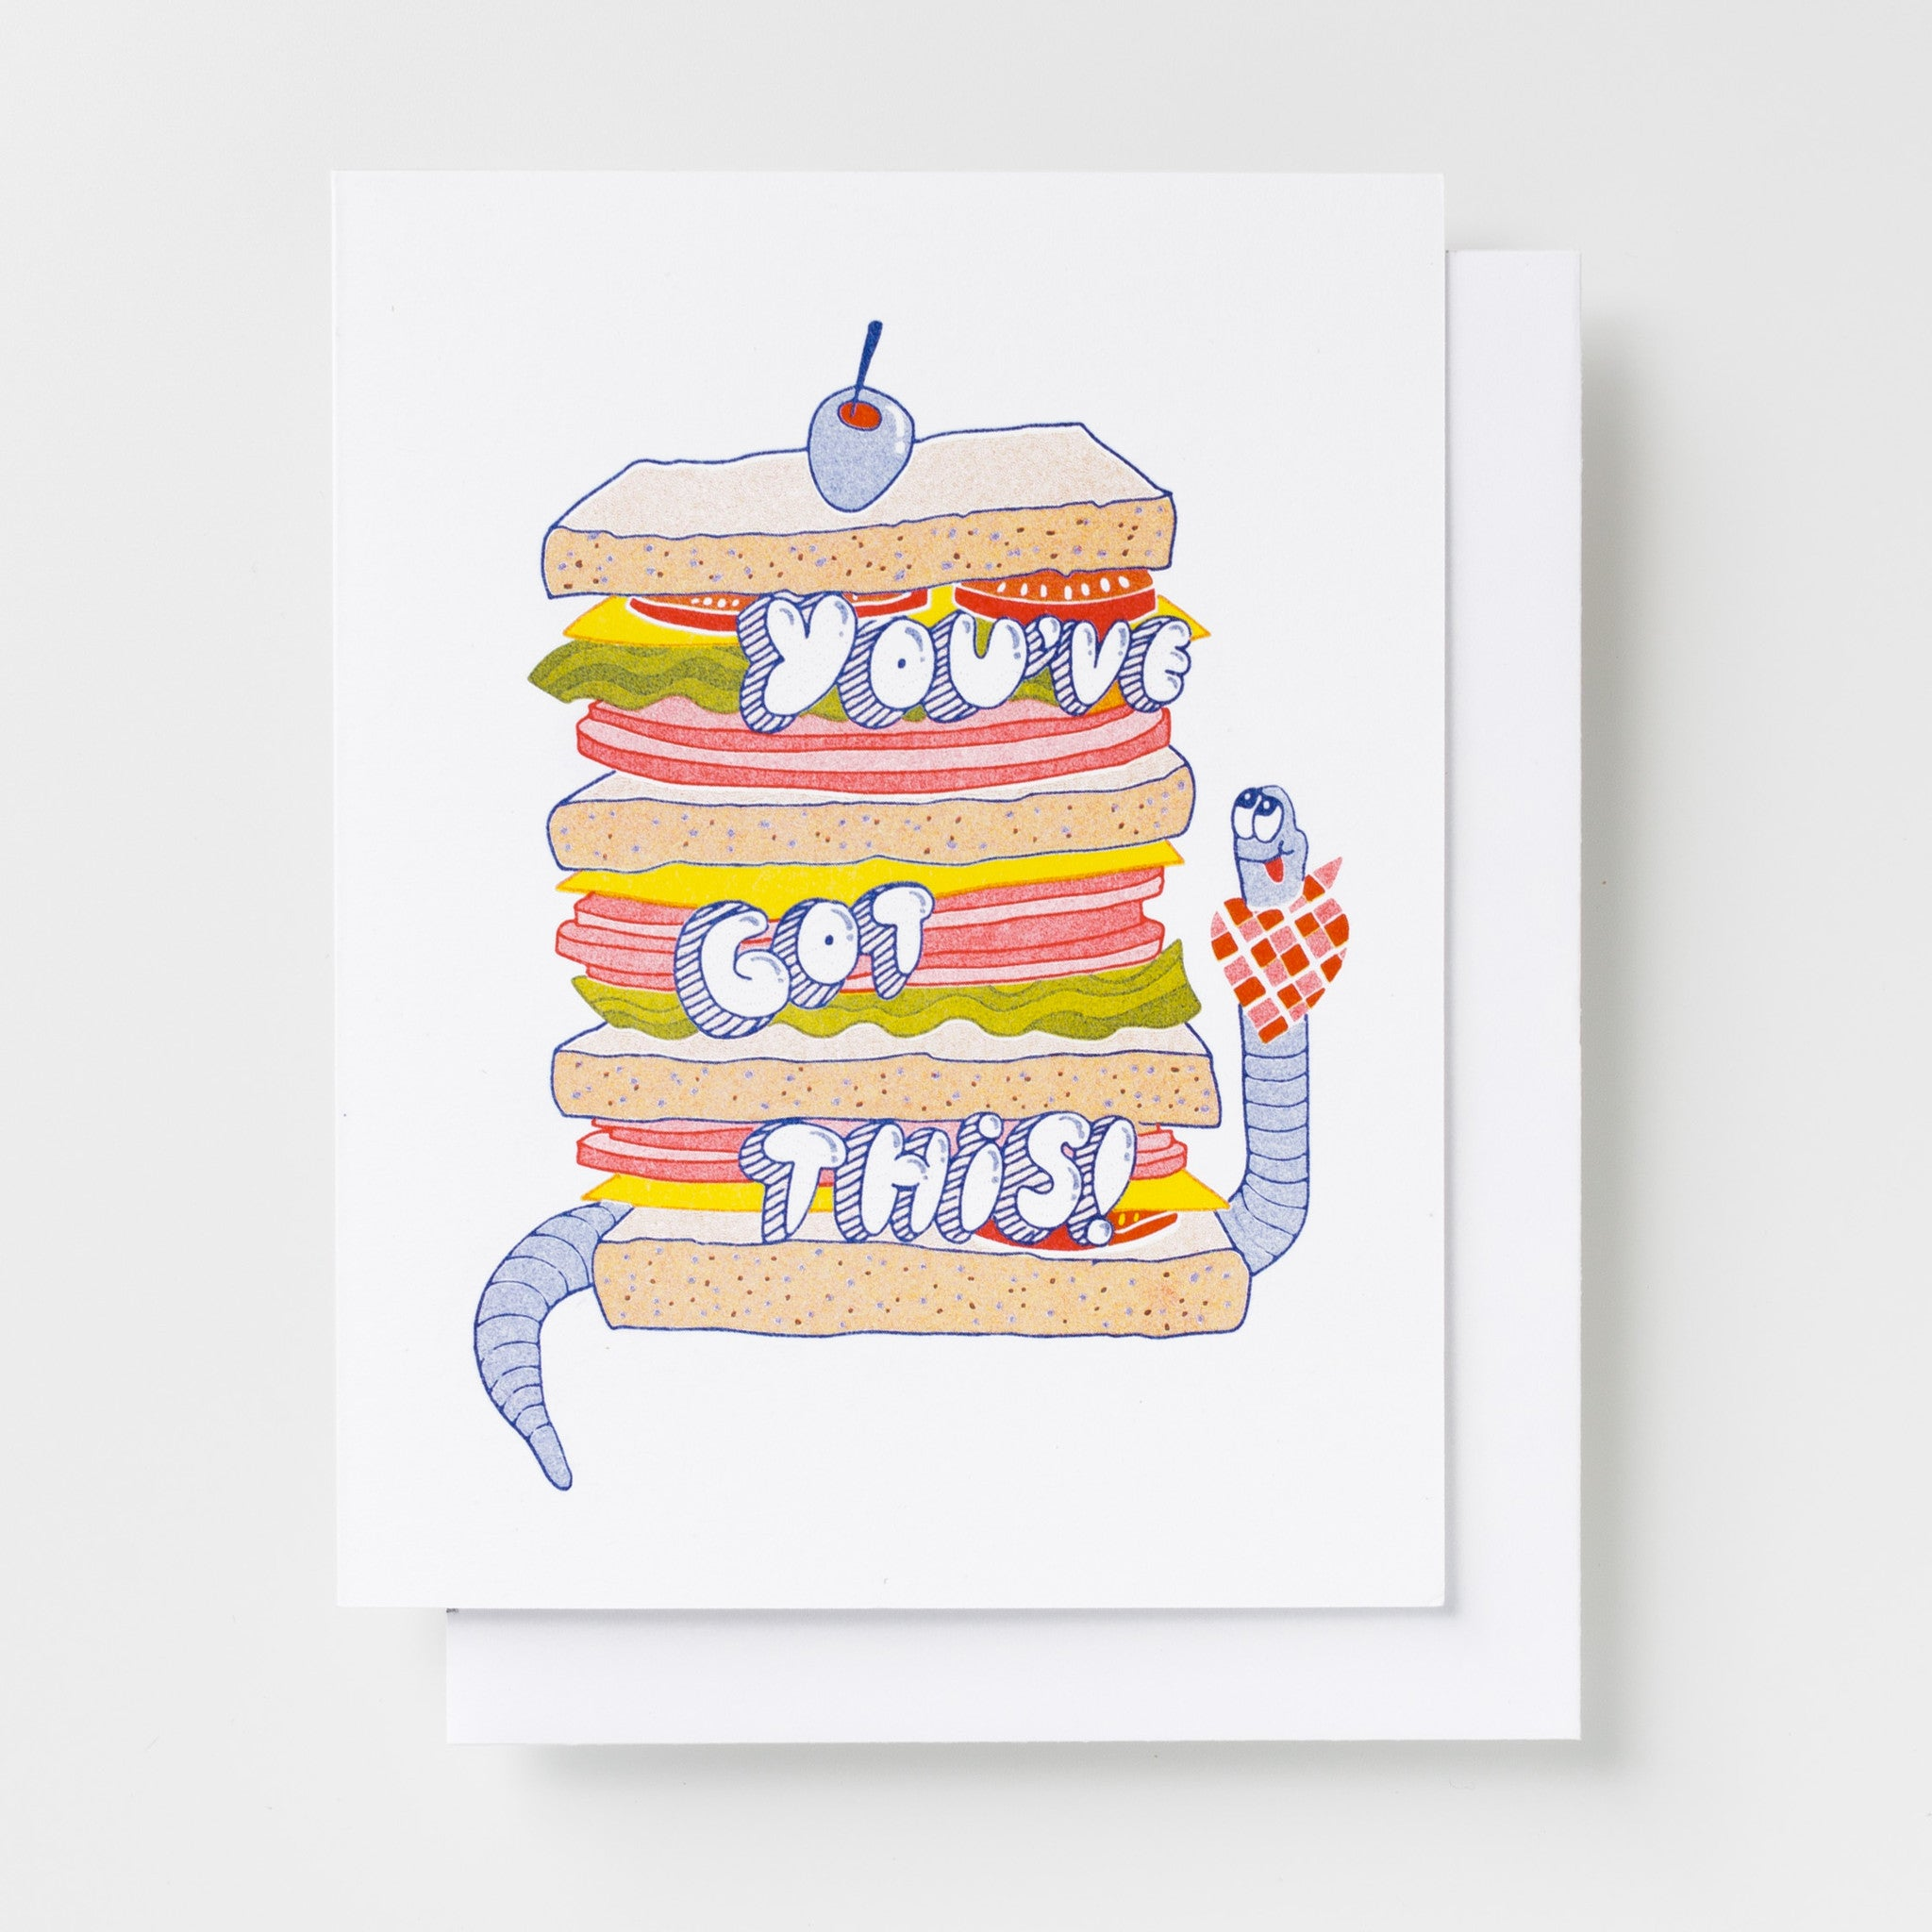 You've Got This! - Risograph Card